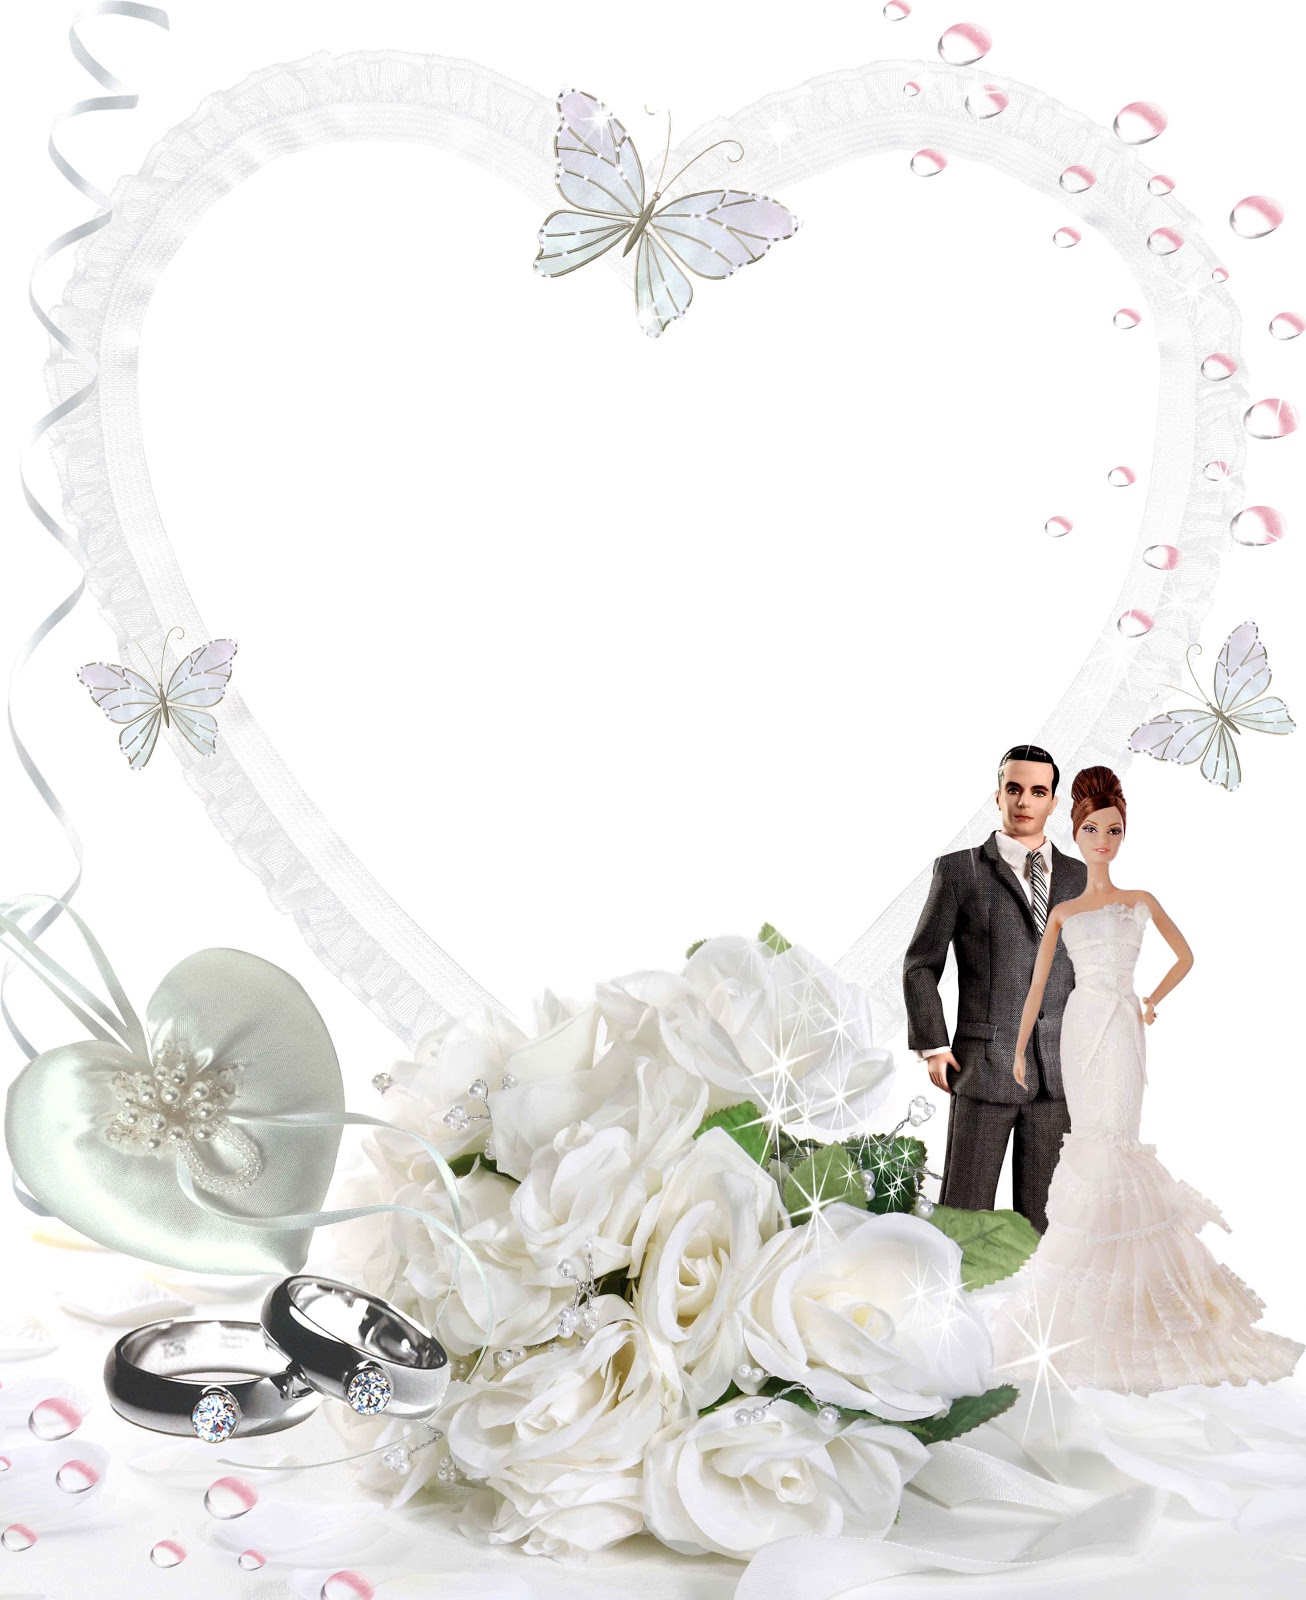 download wedding png frame (free) Download (13 MB) 3600x4412  http://www.mediafire pluspng.com/?x6a77vocdhheoh6 - Wedding PNG Download